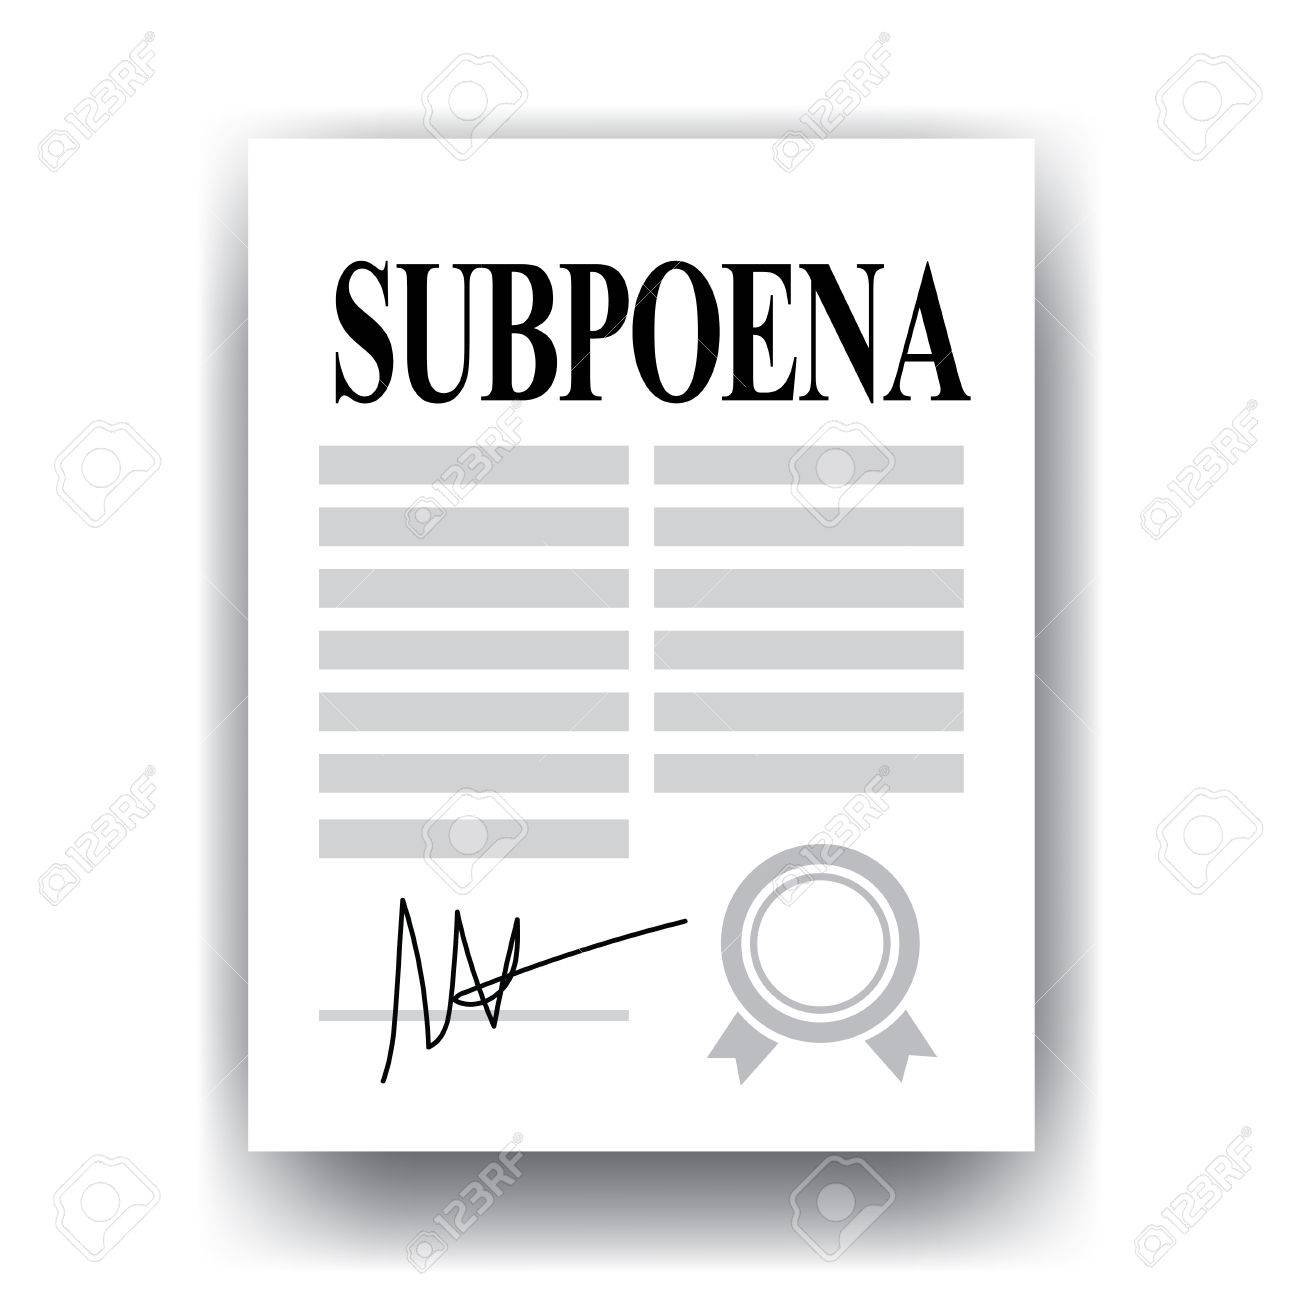 subpoena official legal document isolated on white background